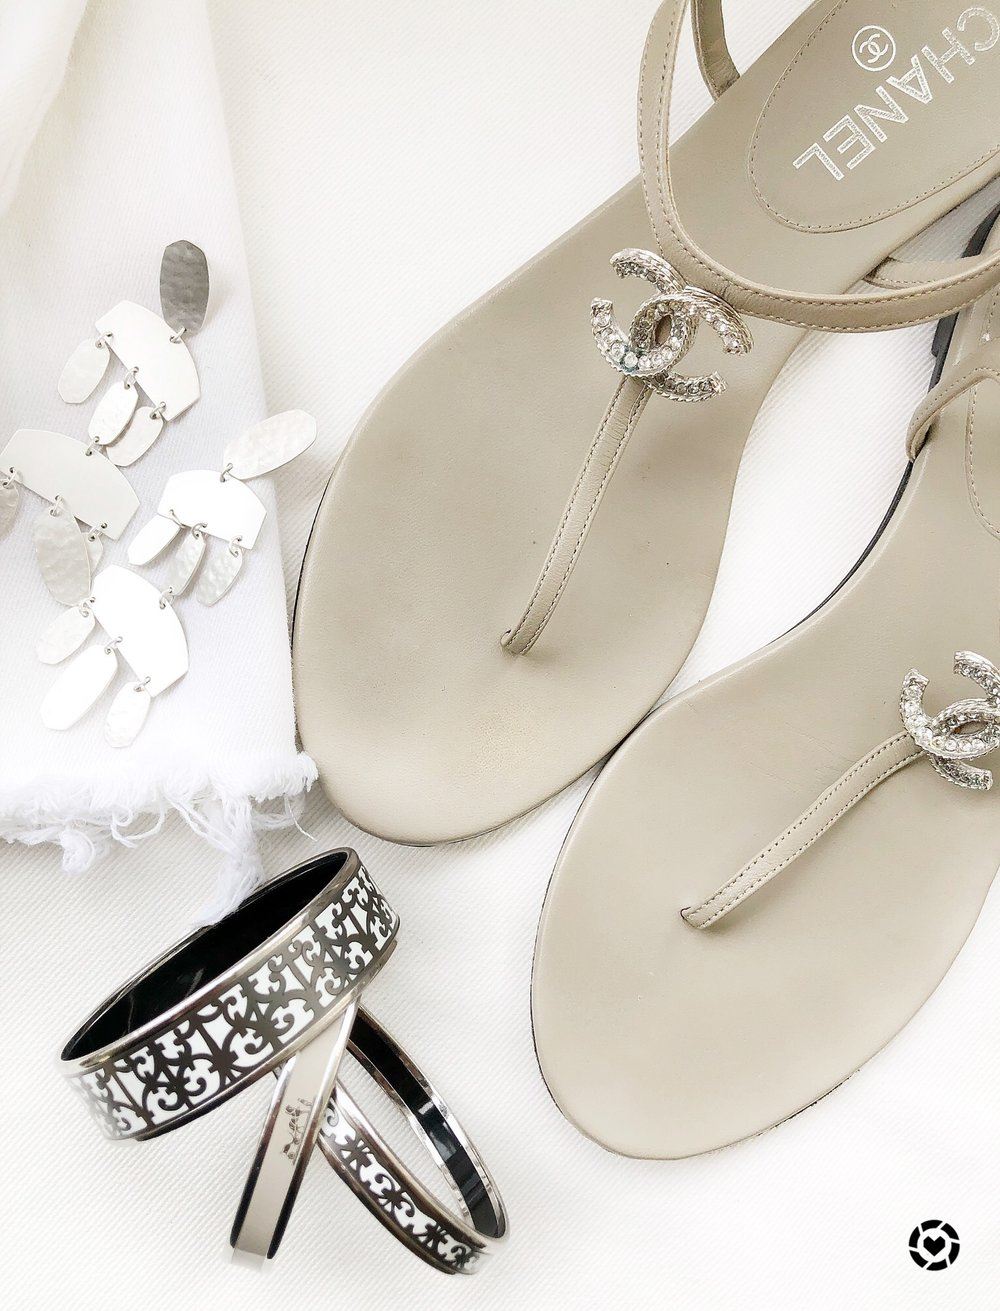 Nude Chanel Flats with Kendra Scott Earrings and Grey Hermes Enamel Bangles